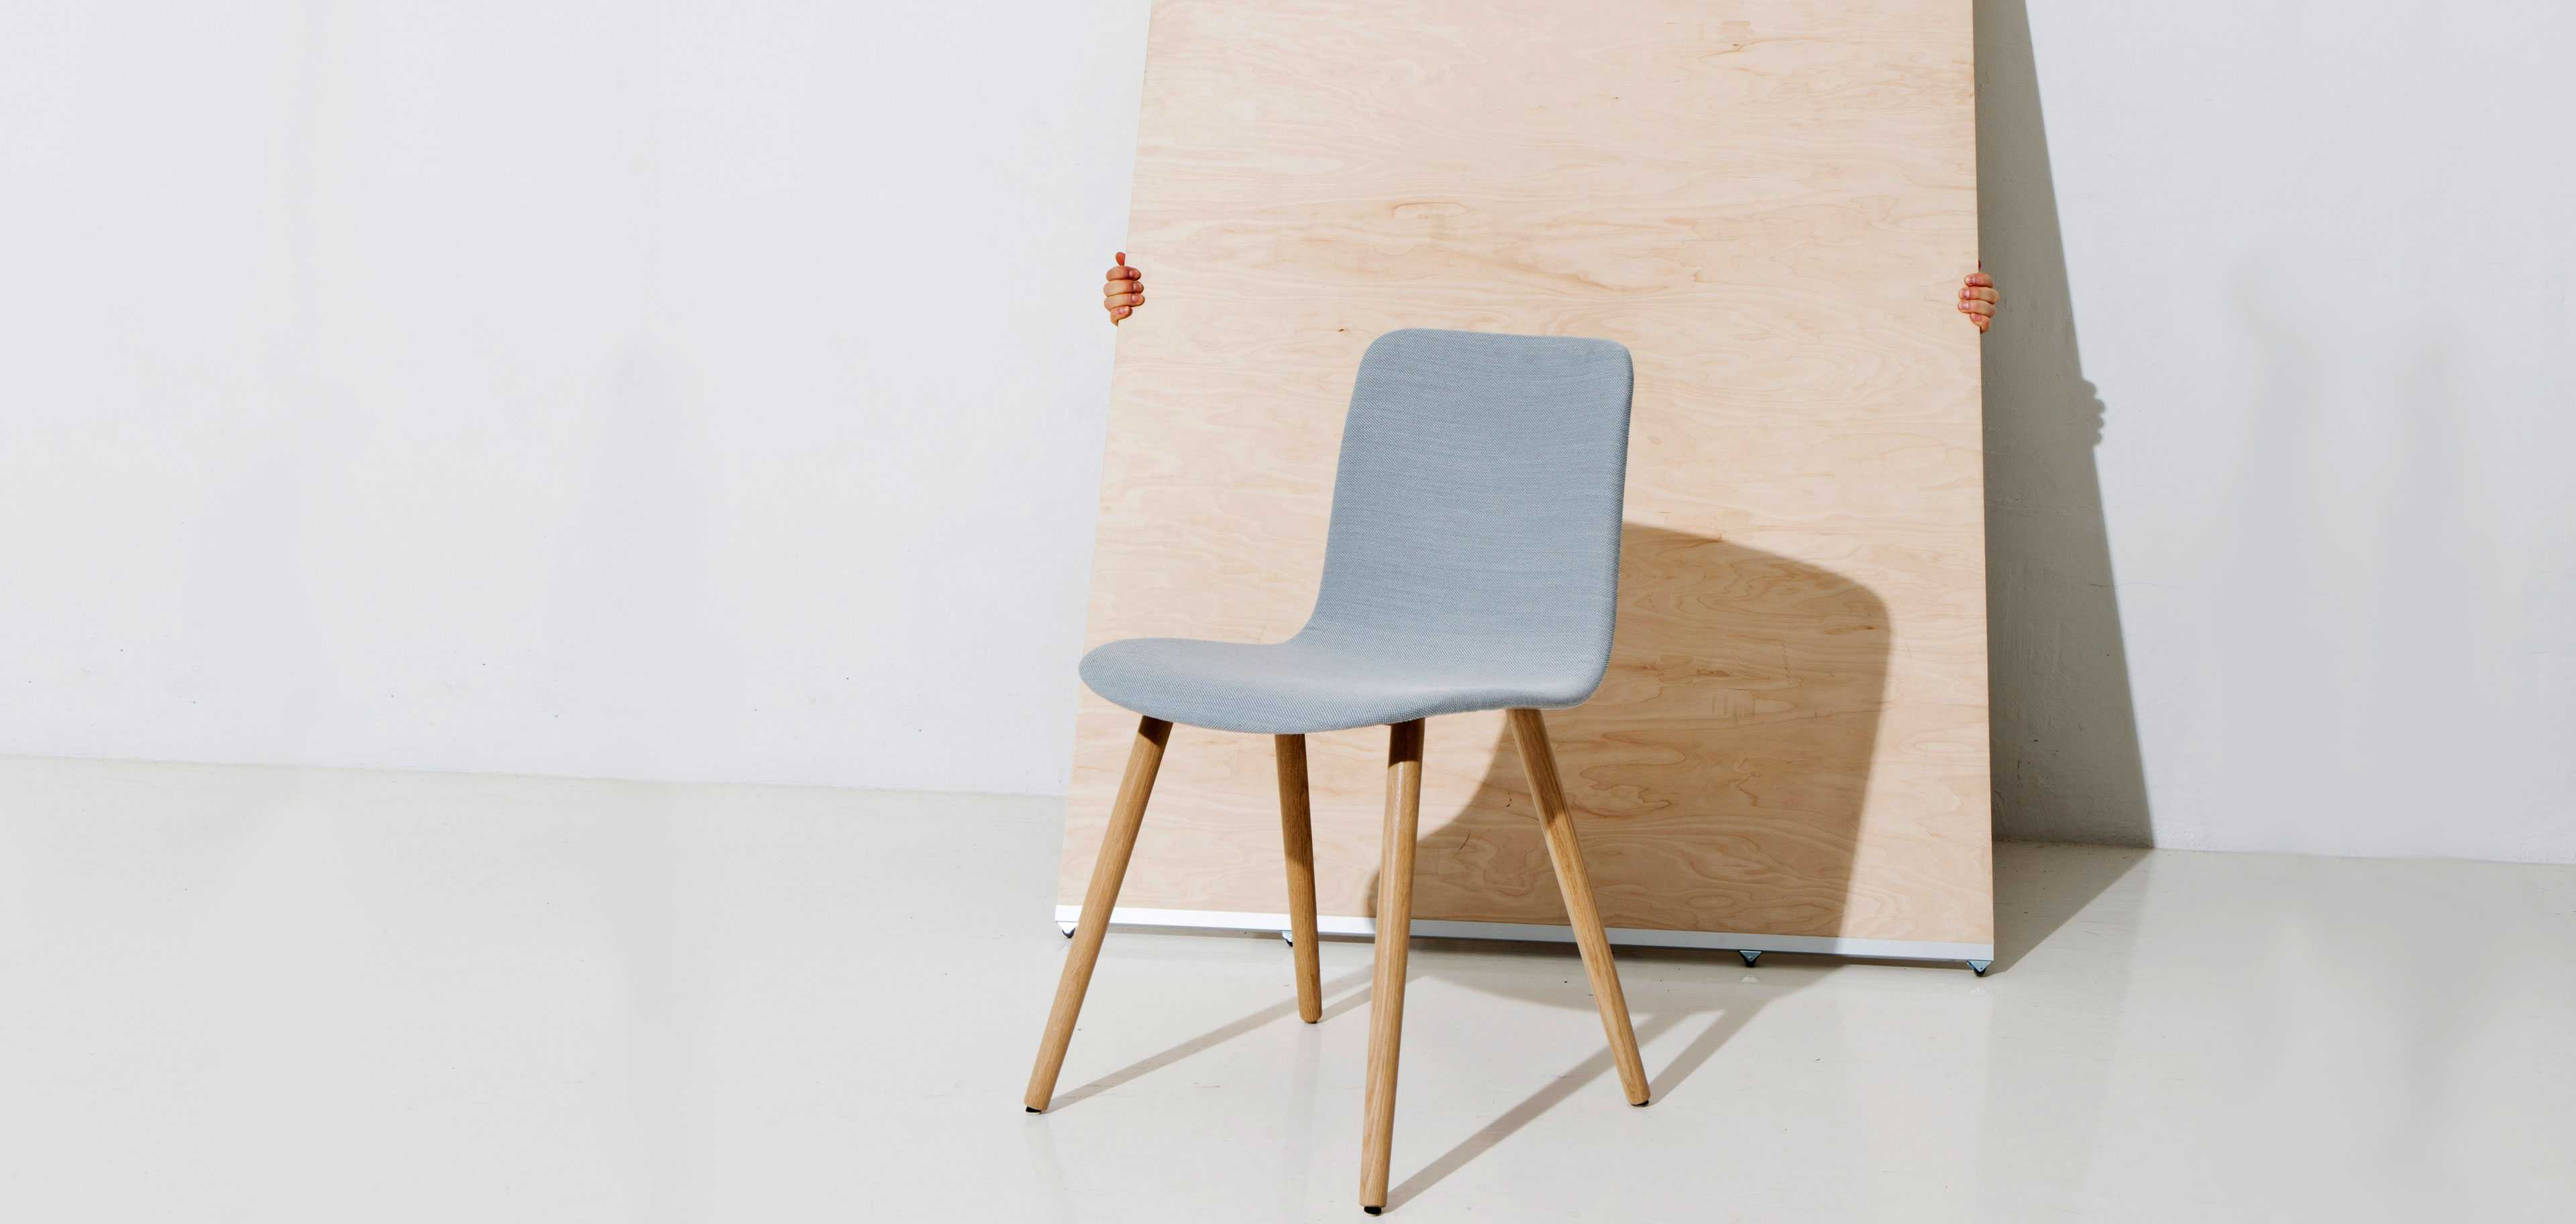 Sola chair with wooden legs